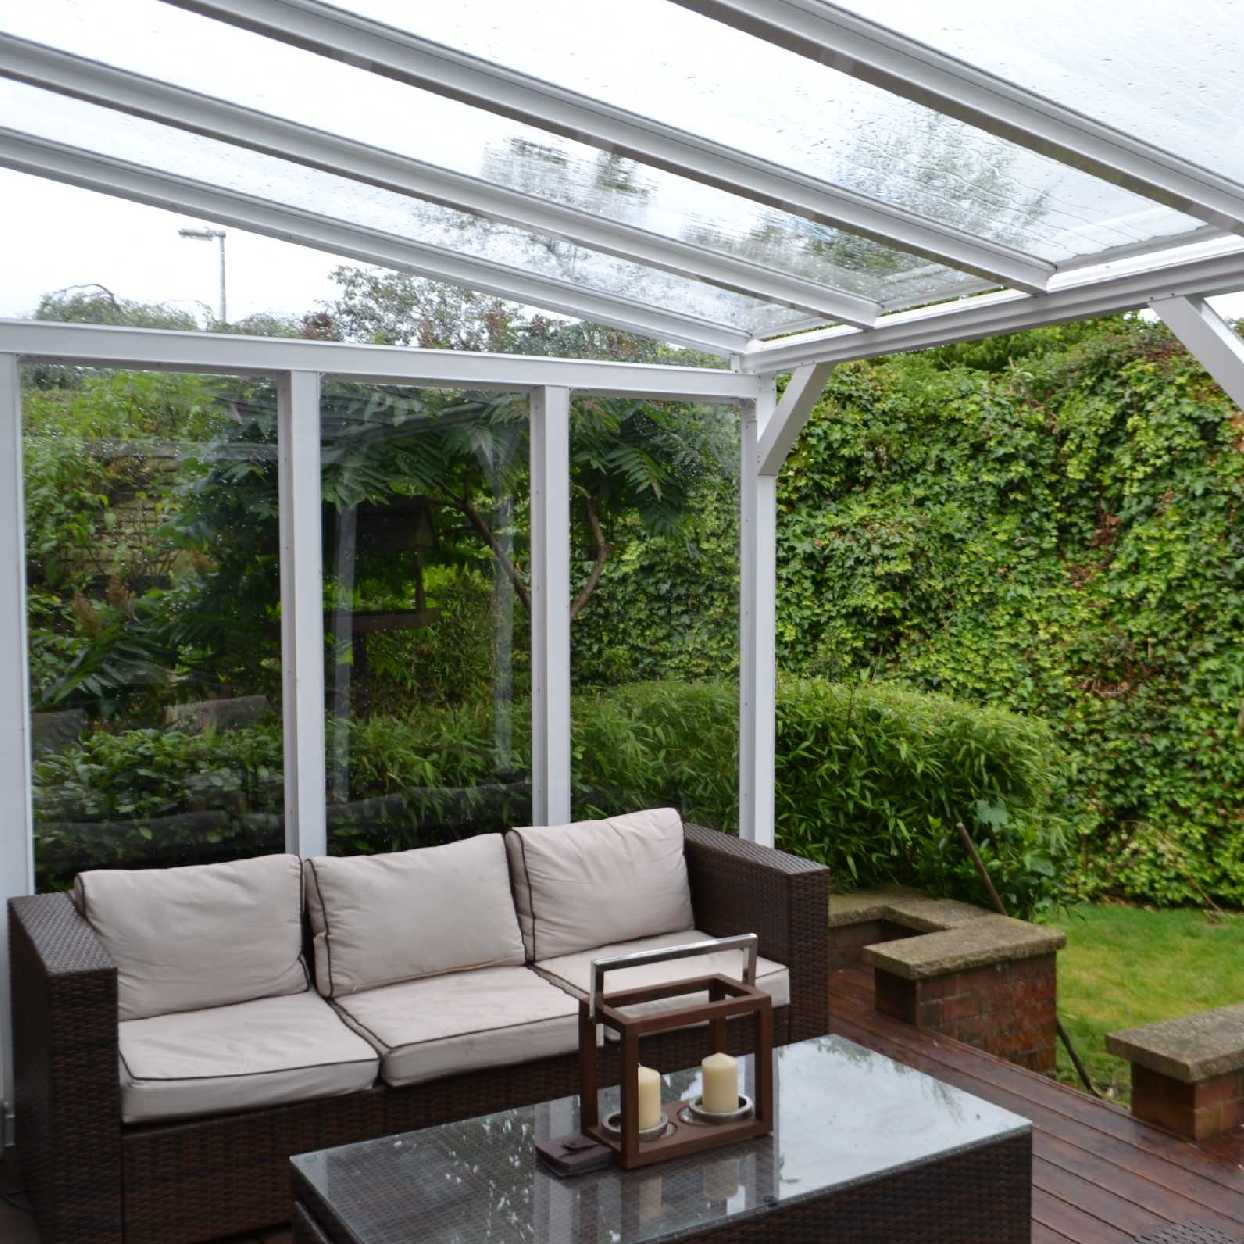 Omega Smart White Lean-To Canopy with 6mm Glass Clear Plate Polycarbonate Glazing - 10.5m (W) x 1.5m (P), (5) Supporting Posts